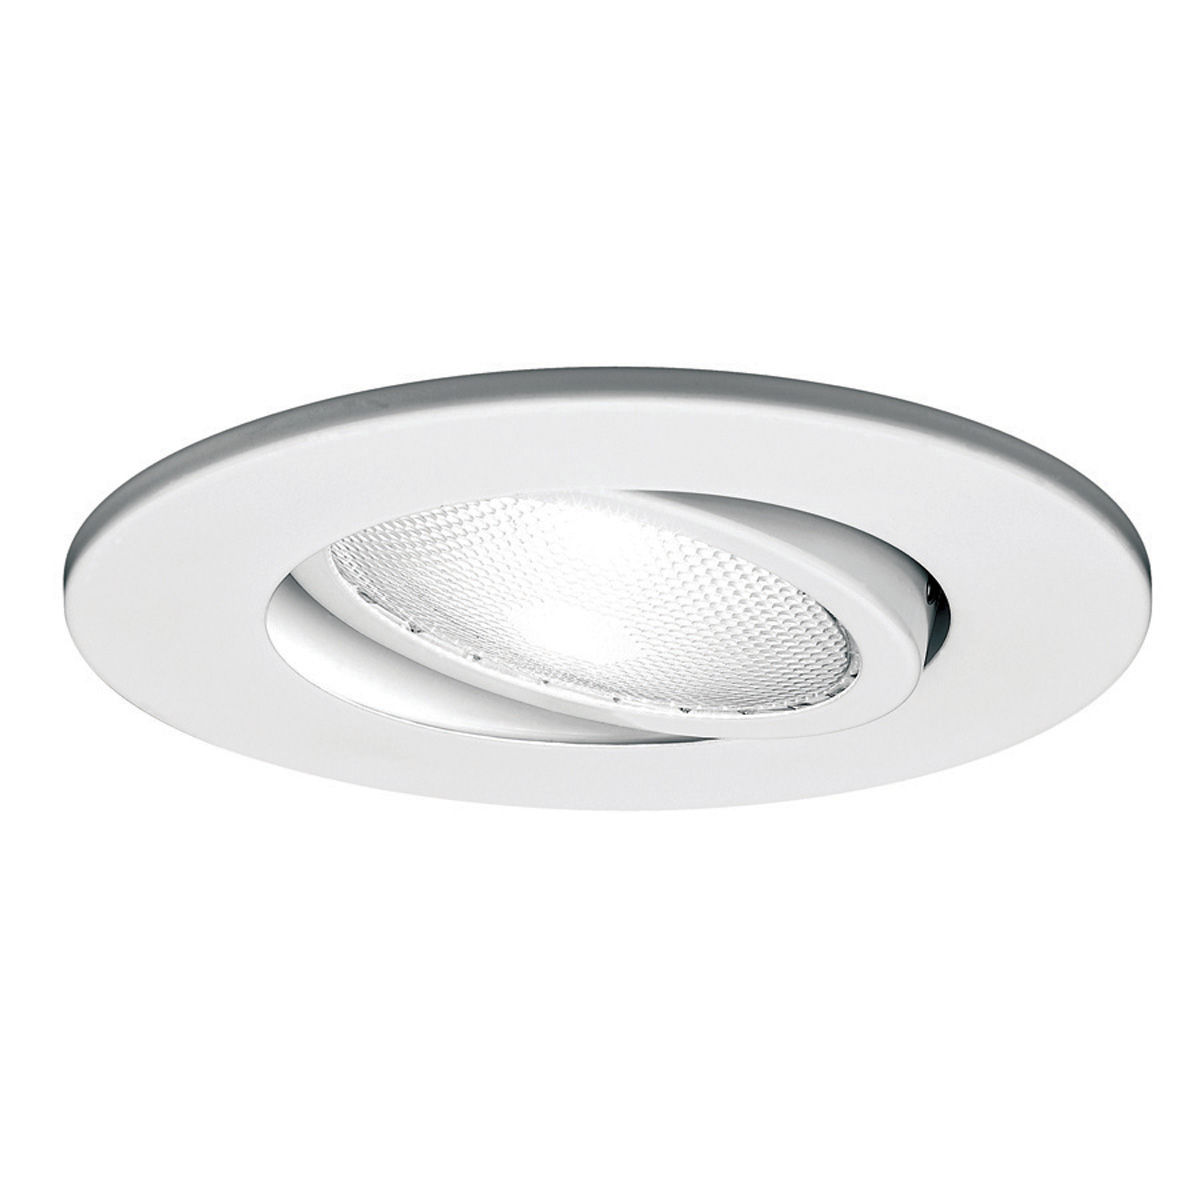 Recessed ceiling spotlight indoor halogen round r 532 recessed ceiling spotlight indoor halogen round r 532 wac lighting mozeypictures